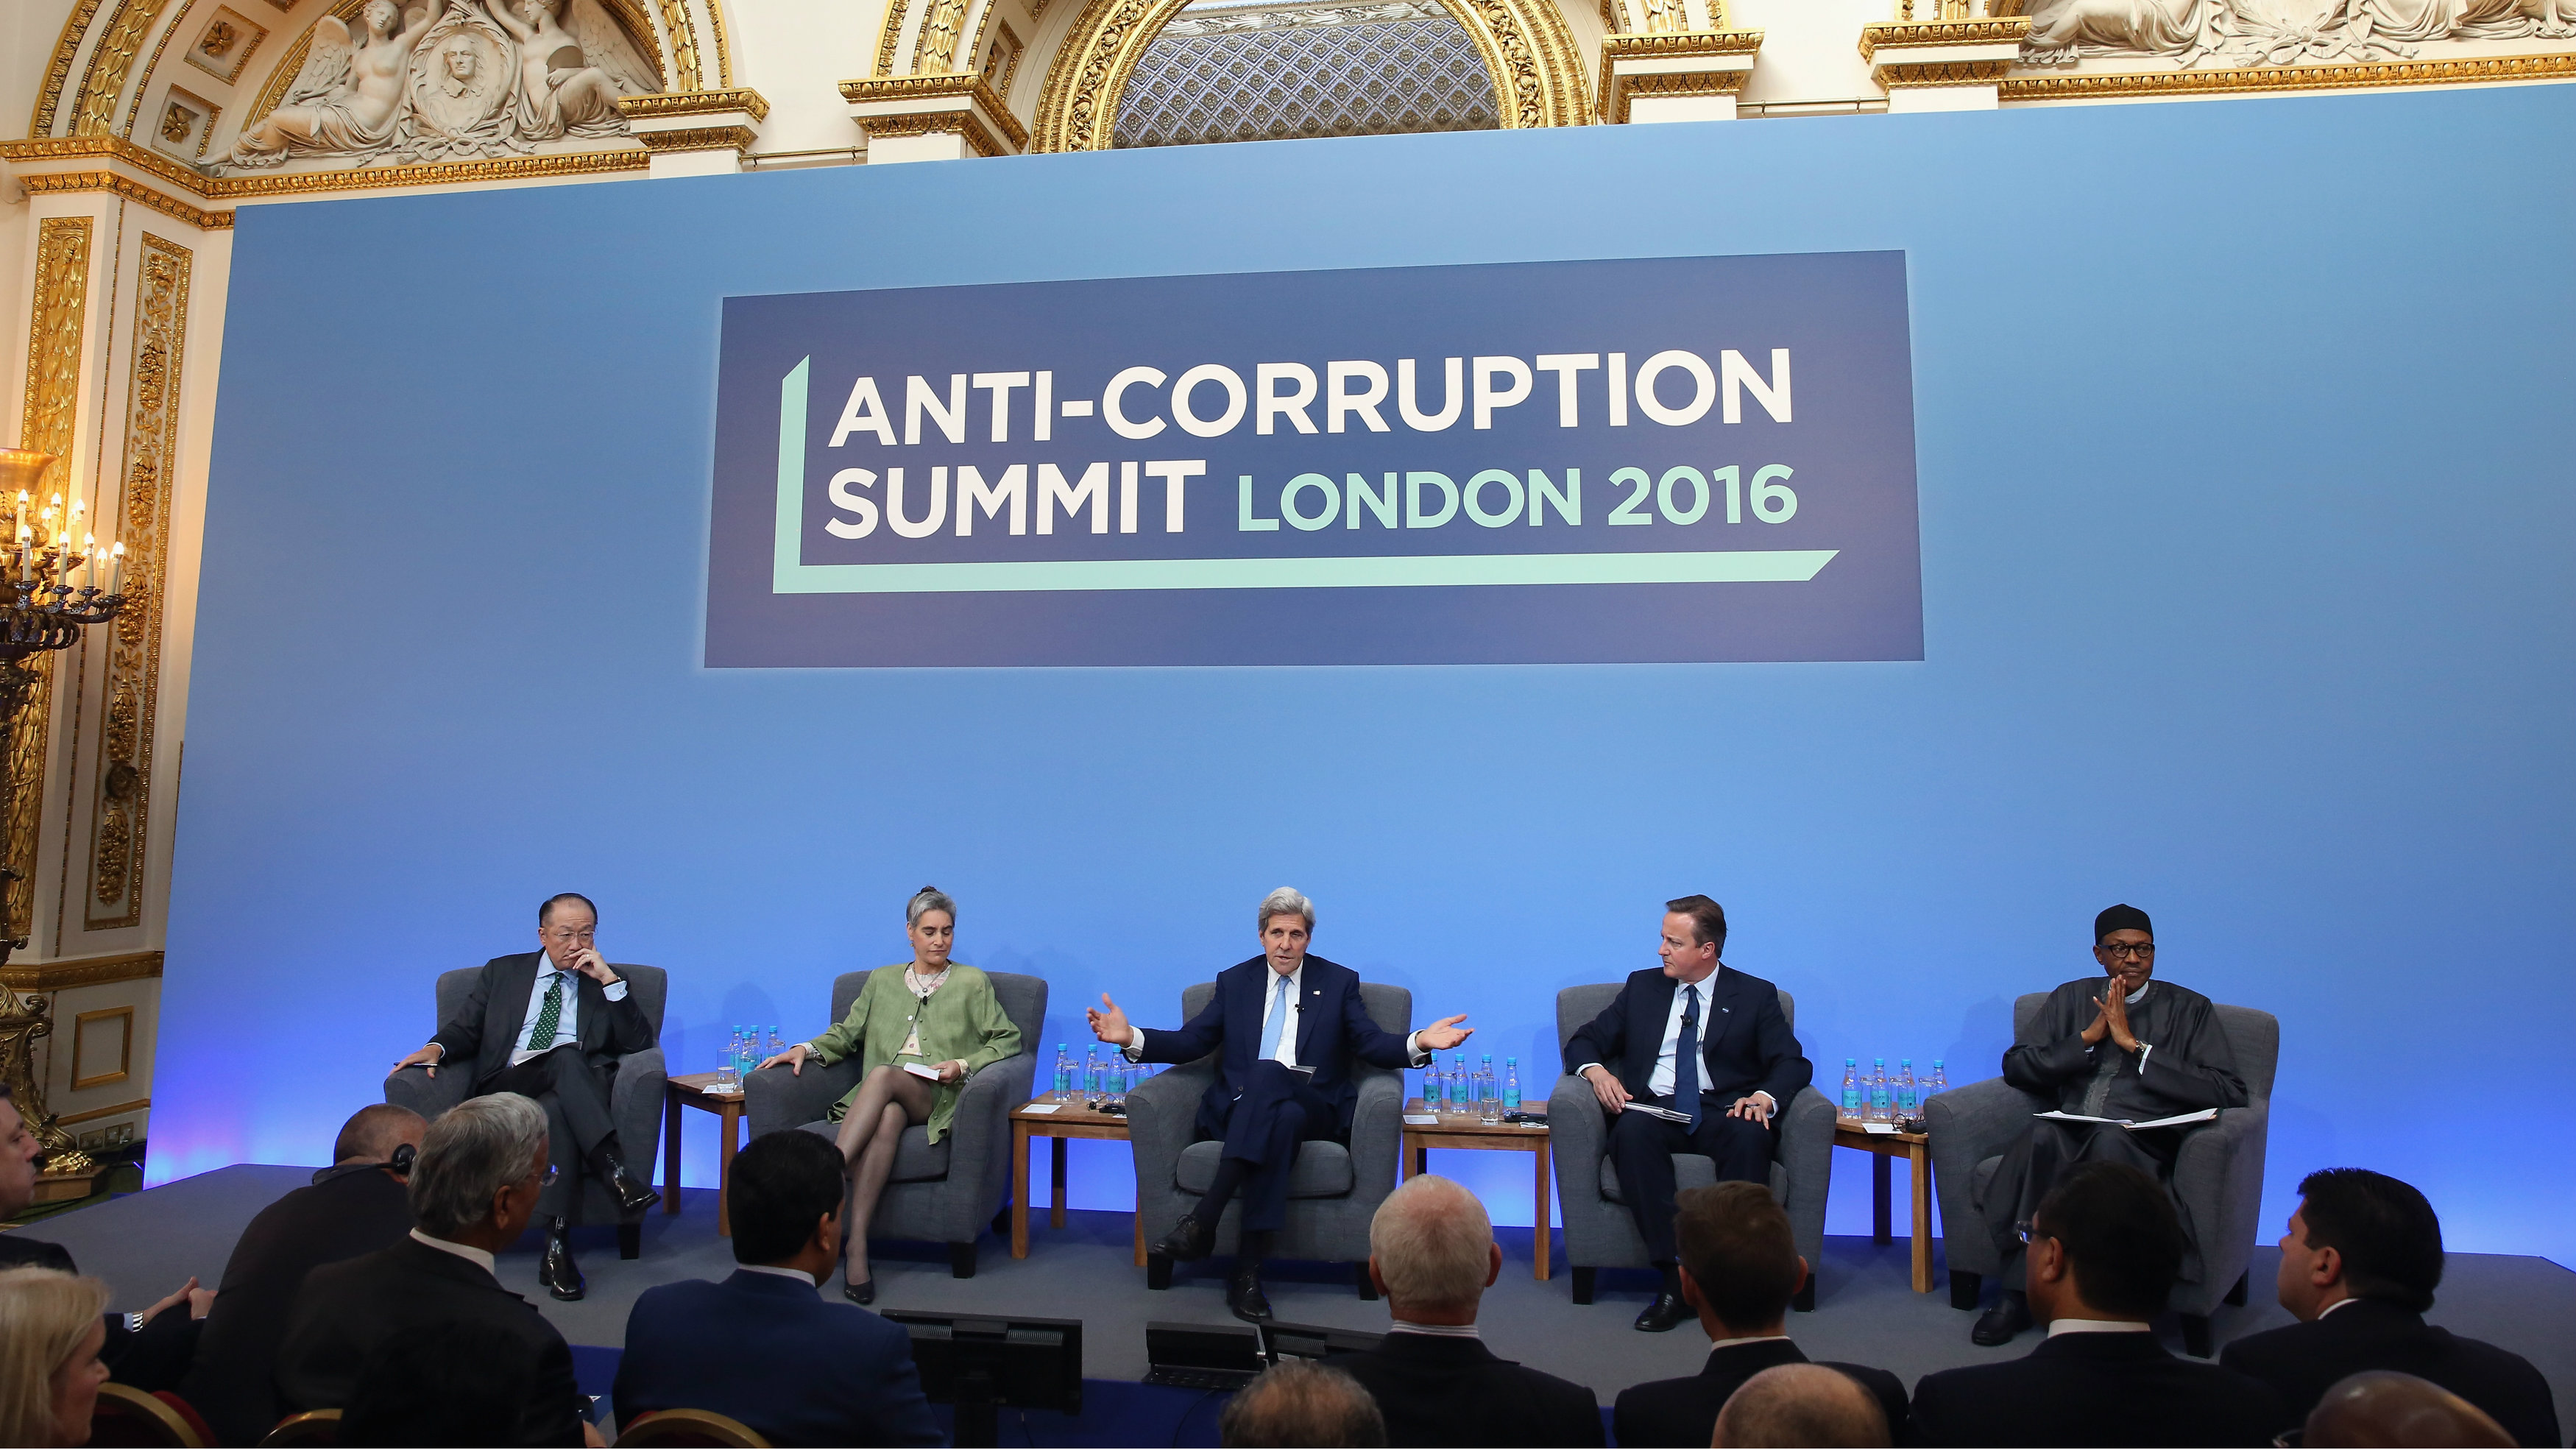 British Prime Minister Cameron is joined by Jim Yong Kim, President of the World Bank Group, (left) Sarah Chayes, a senior associate in the Democracy and Rule of Law Program, (second left) US Secretary of State John Kerry, (third from left) and Nigerian President Muhammadu Buhari, (right), as he opens the international anti-corruption summit on May 12, 2016 in London, England